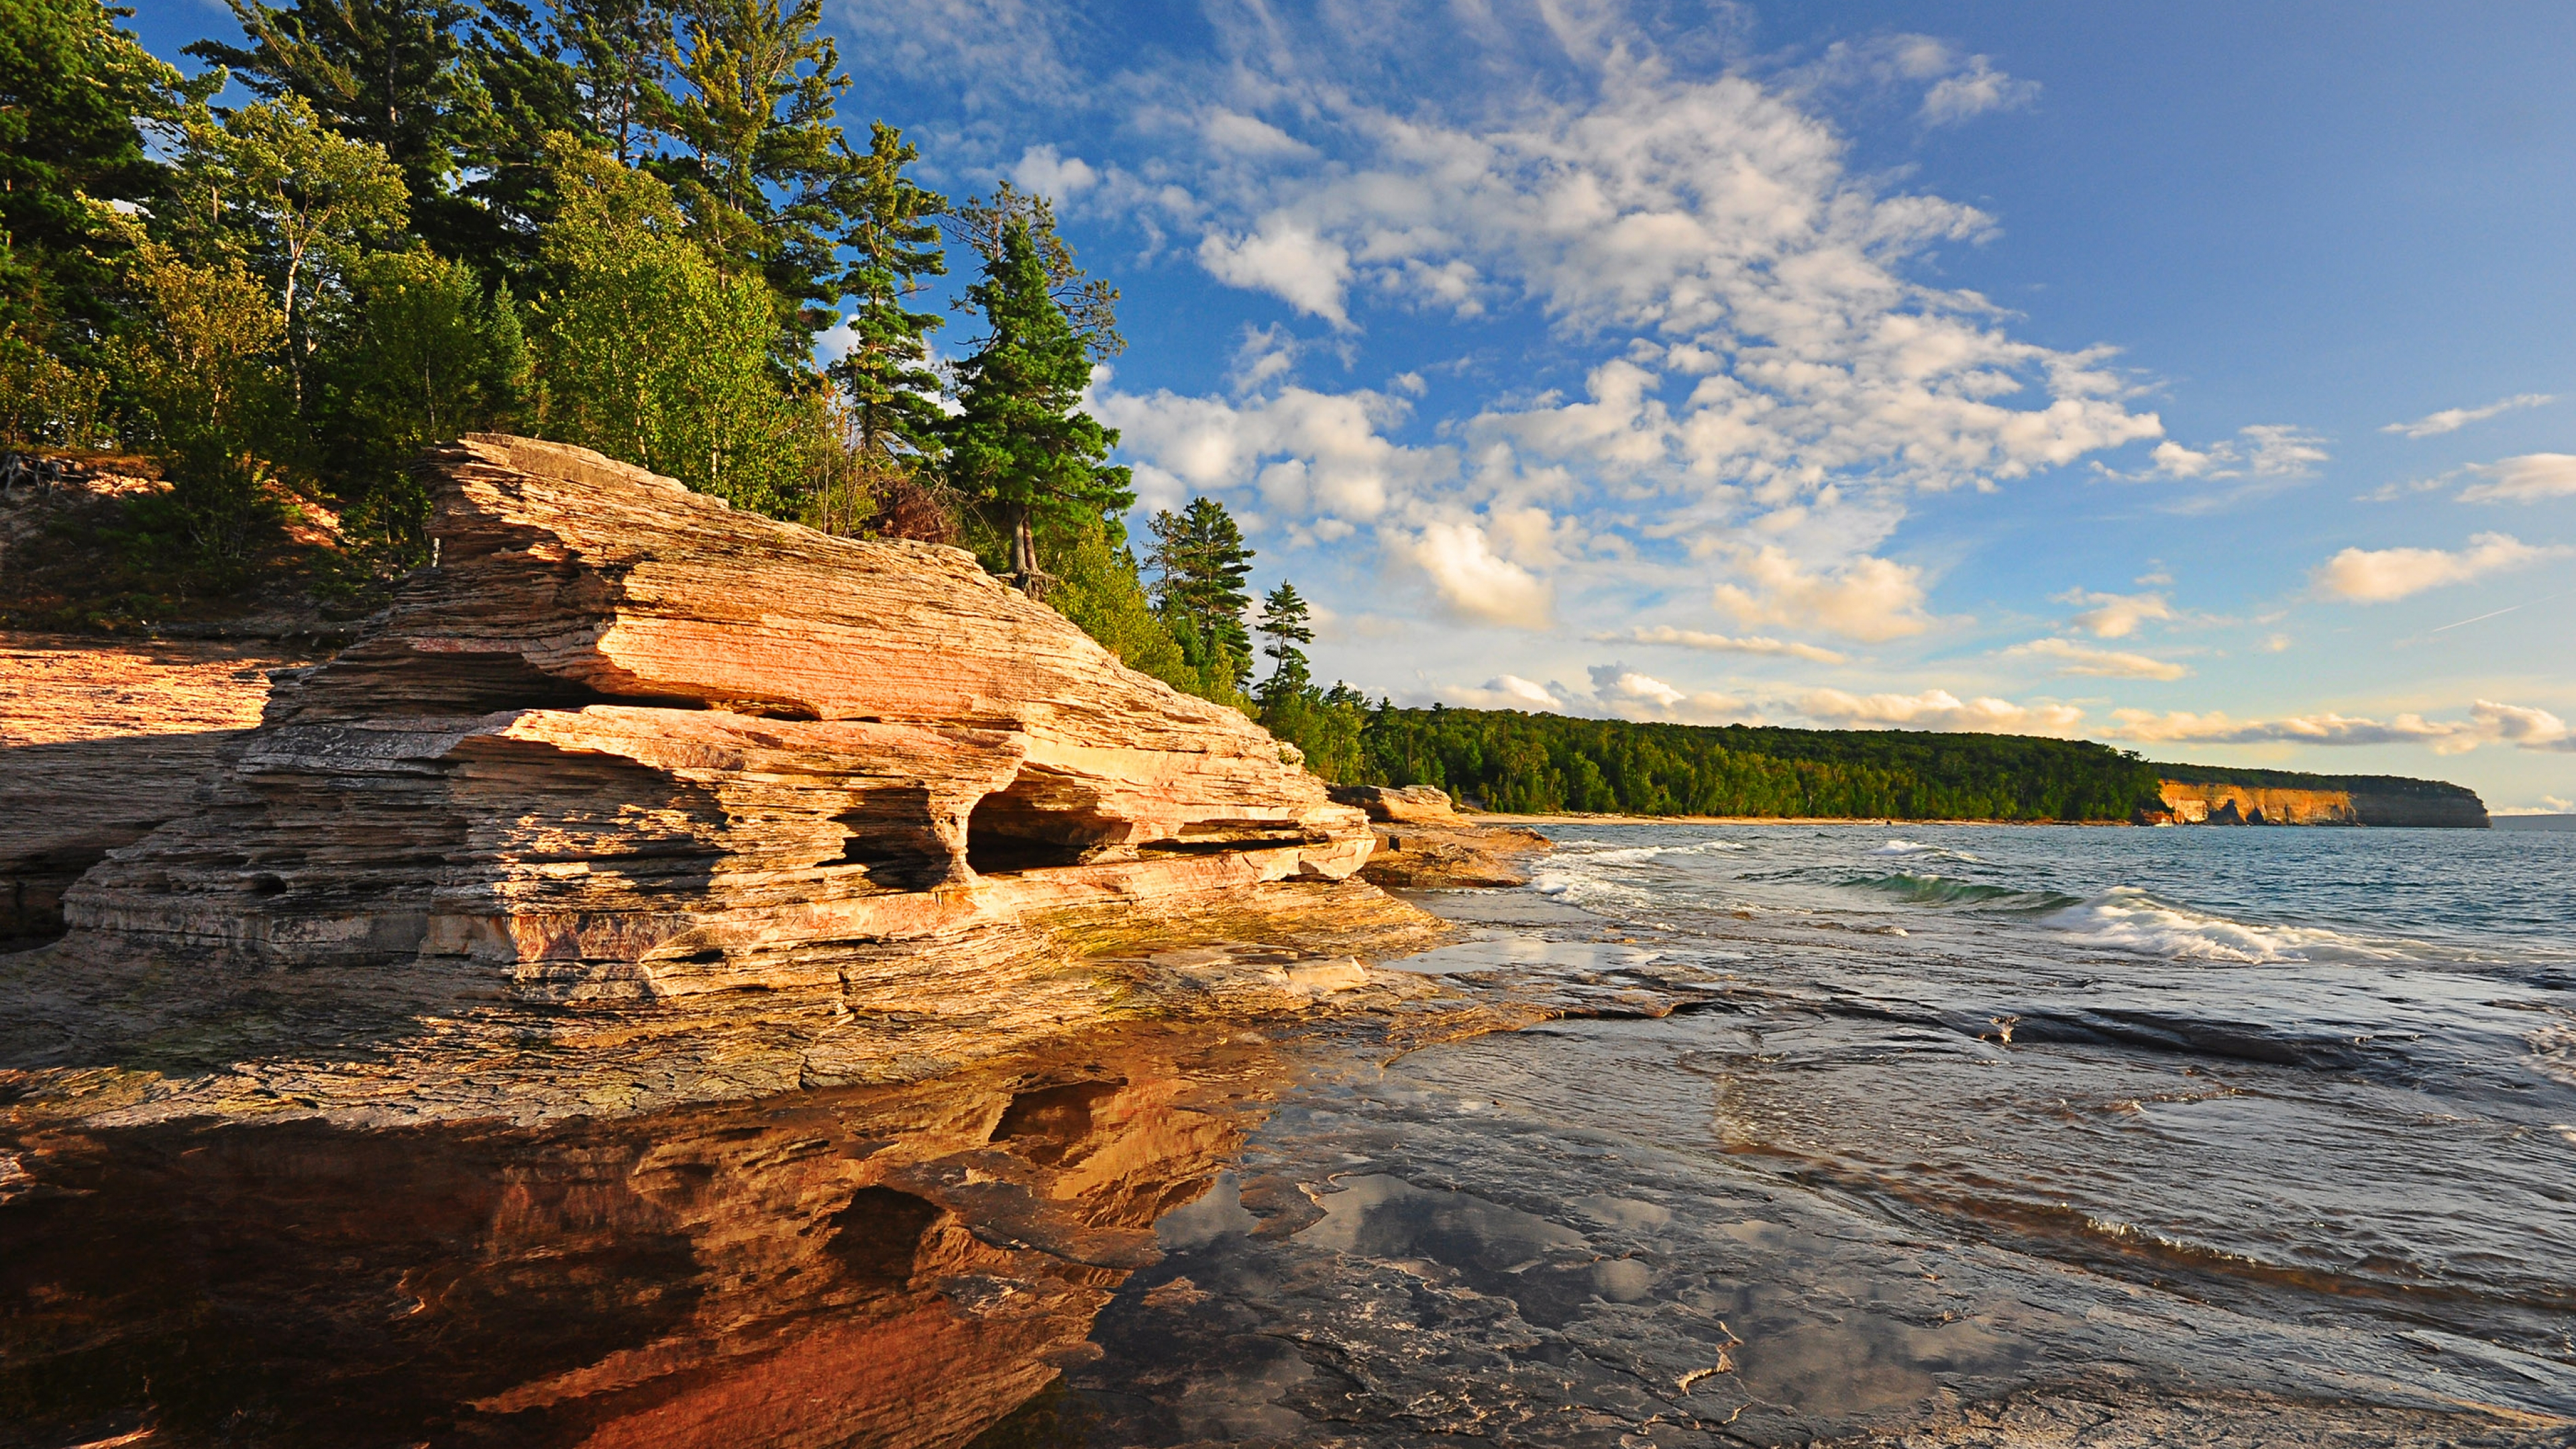 View over the water at the jagged shore of Pictured Rocks